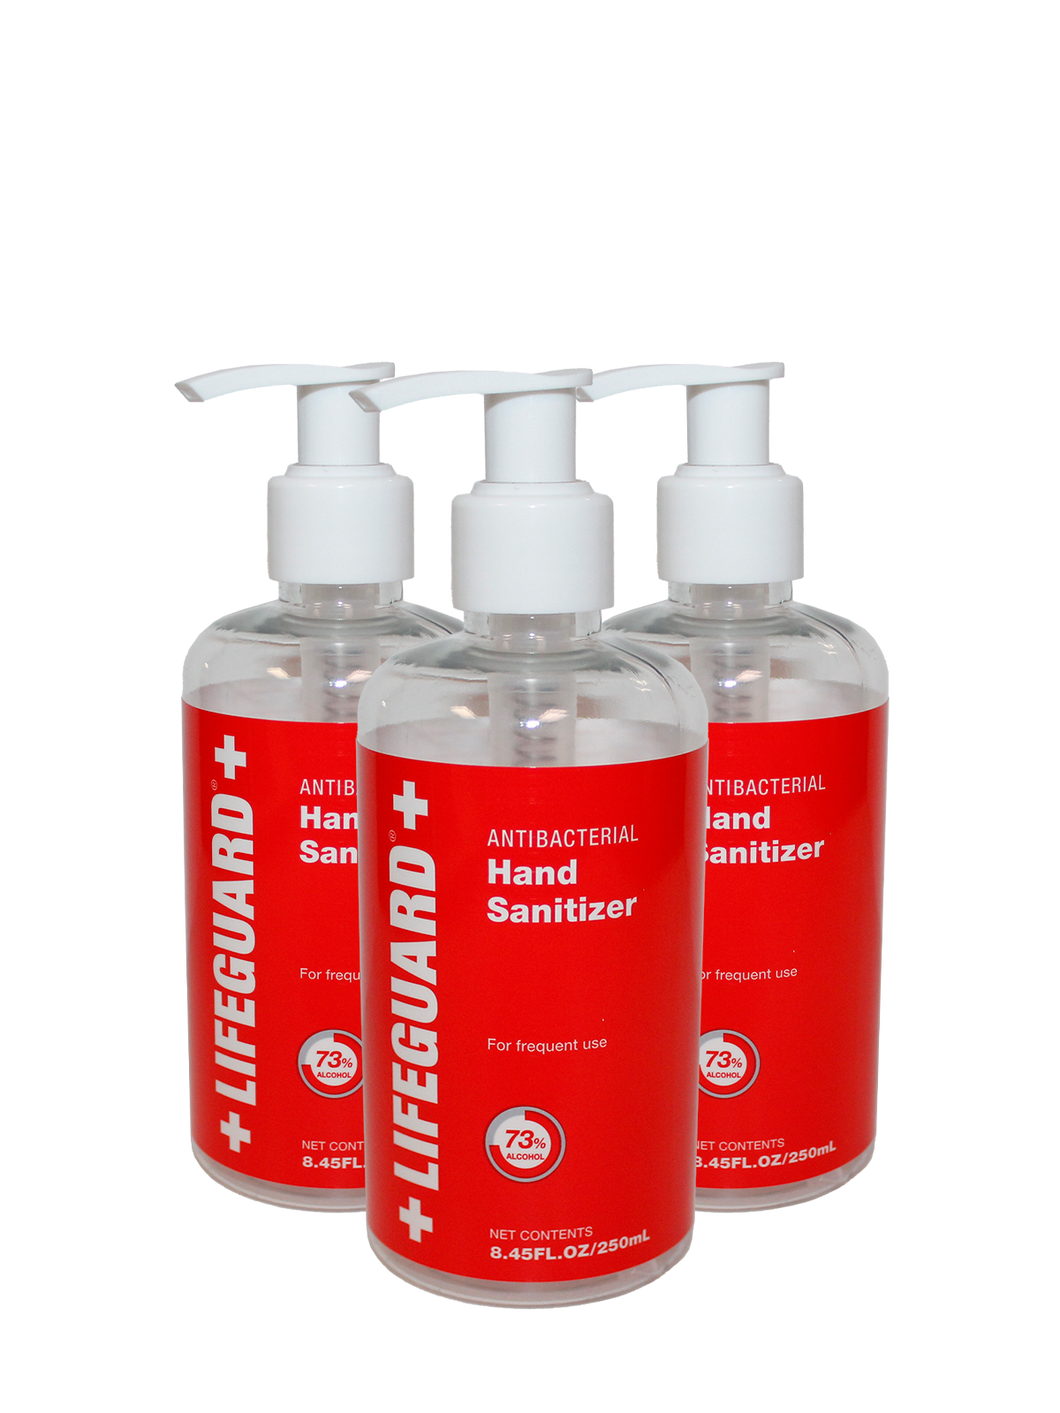 LIFEGUARD ANTISEPTIC LIQUID HAND SANITIZER 16 fl oz (24 per case)-$4.75 each